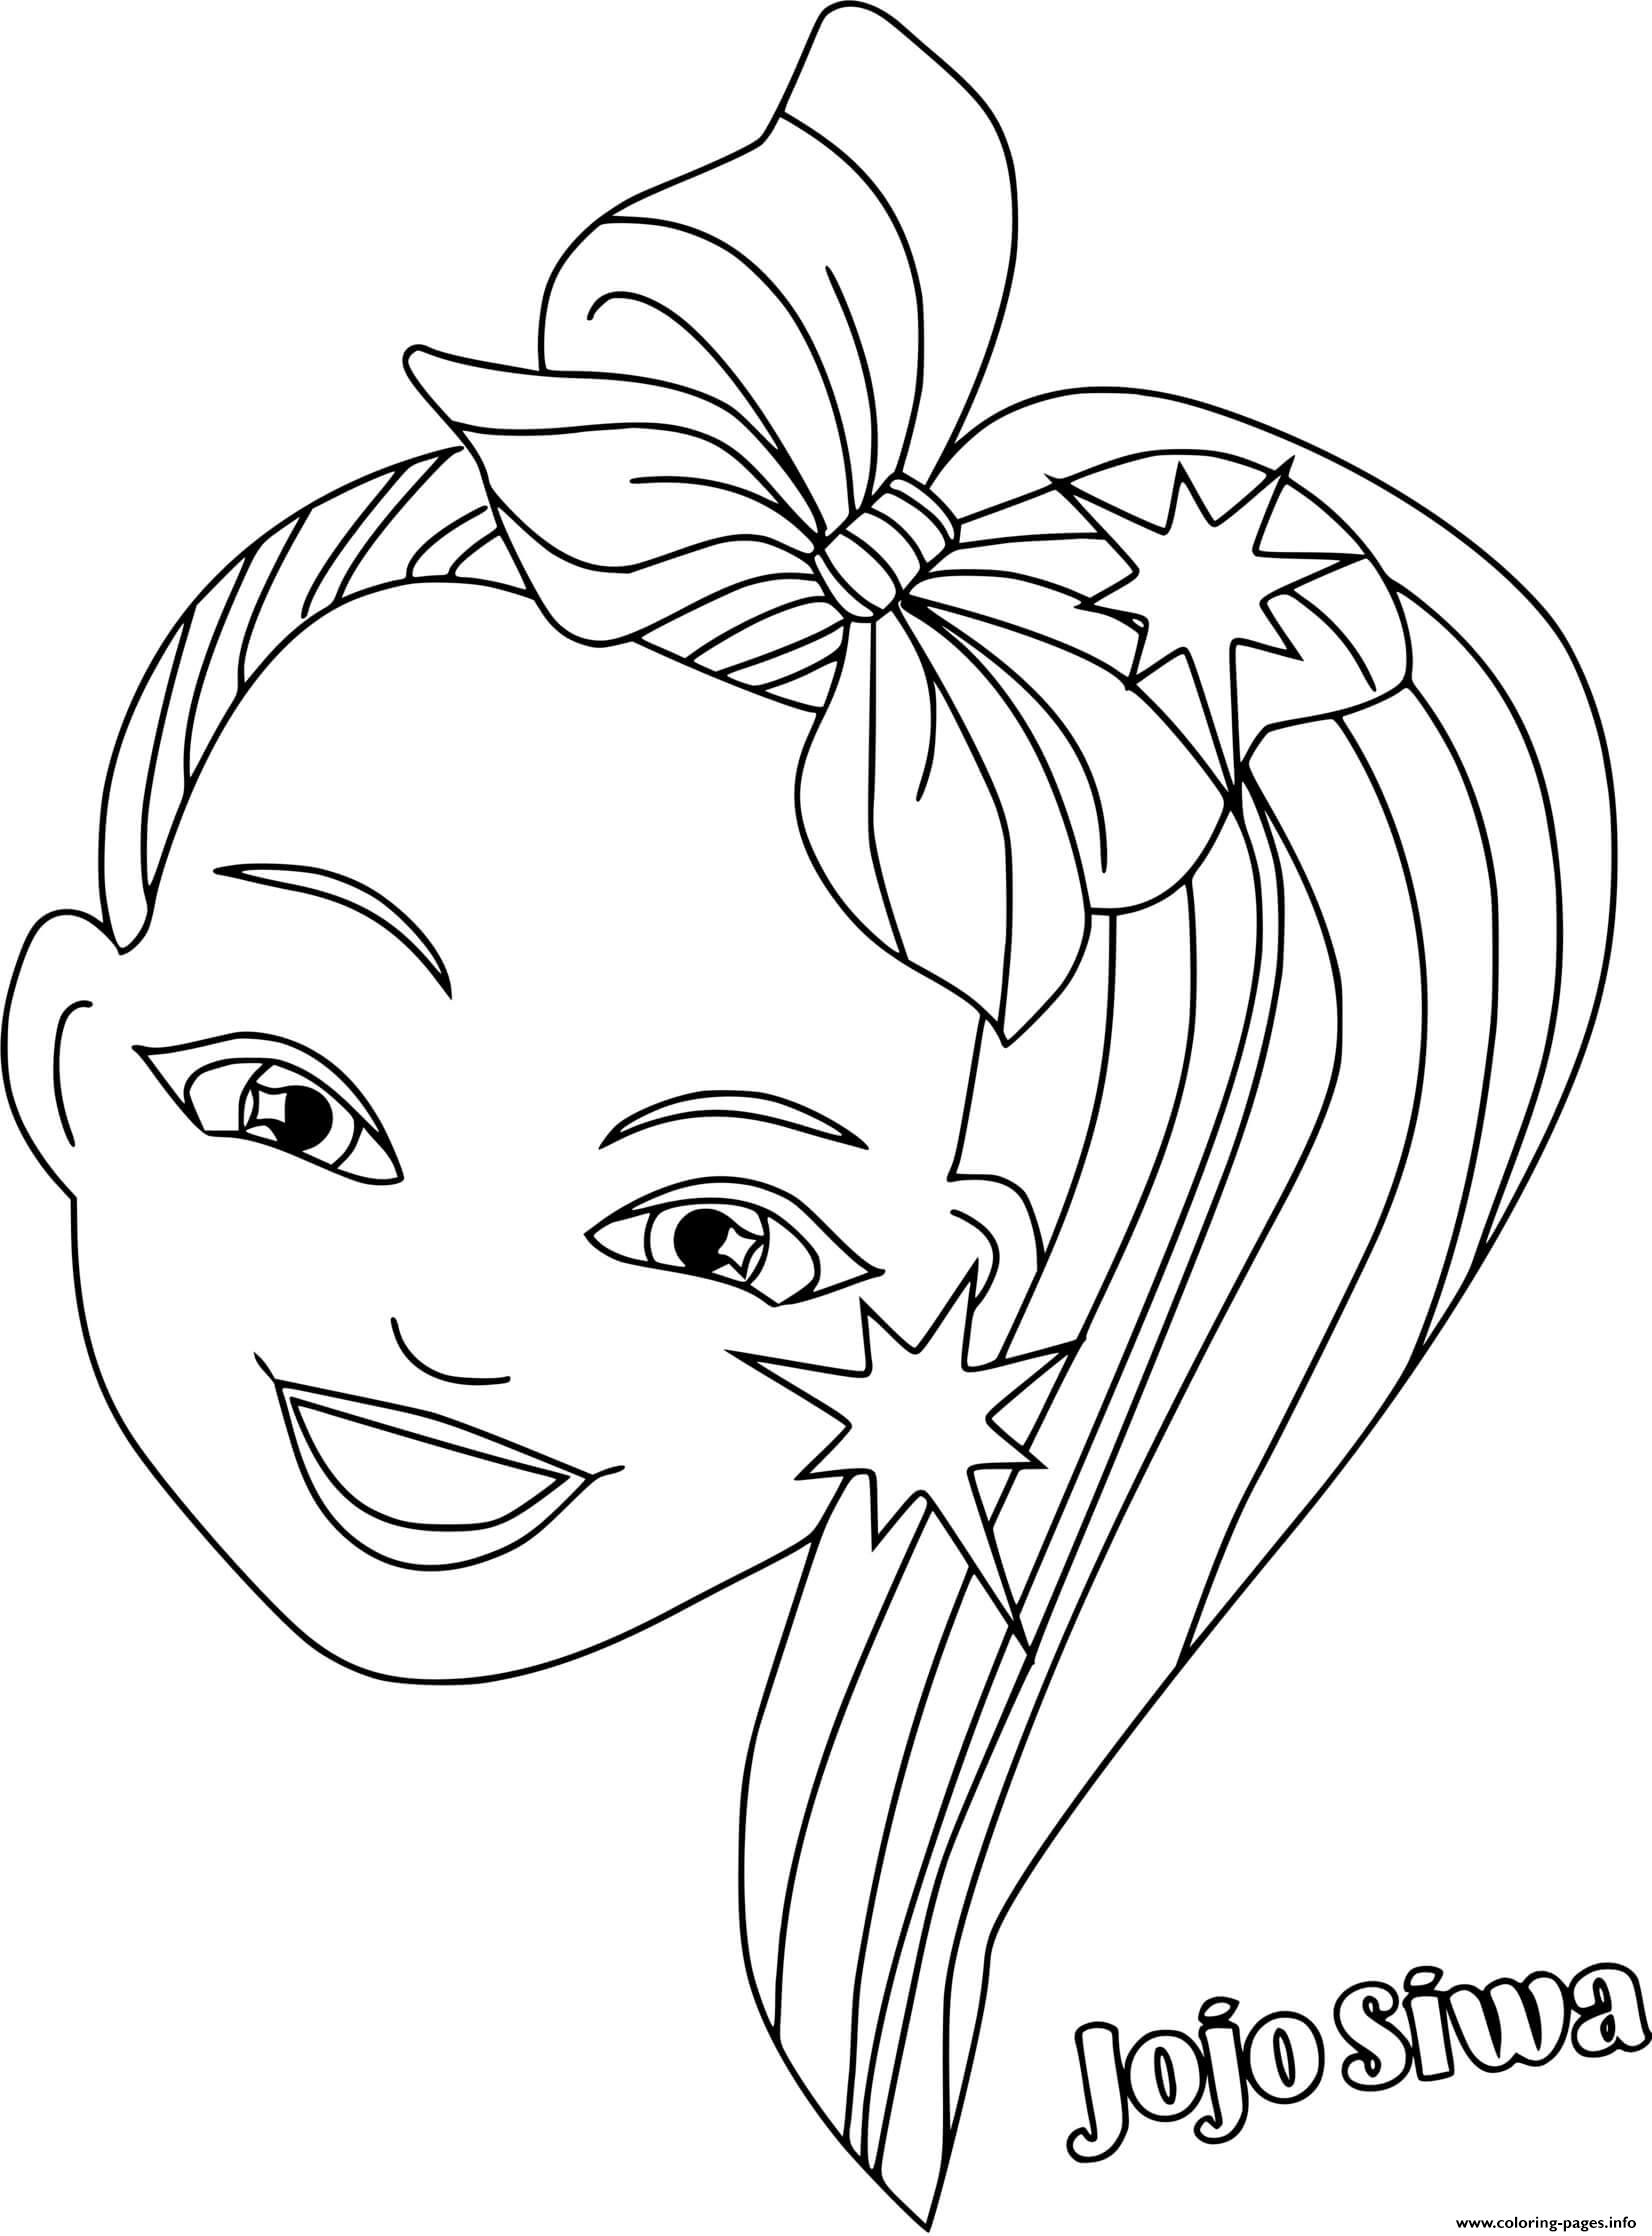 Jojo Siwa Colorful Hair Coloring Pages Printable